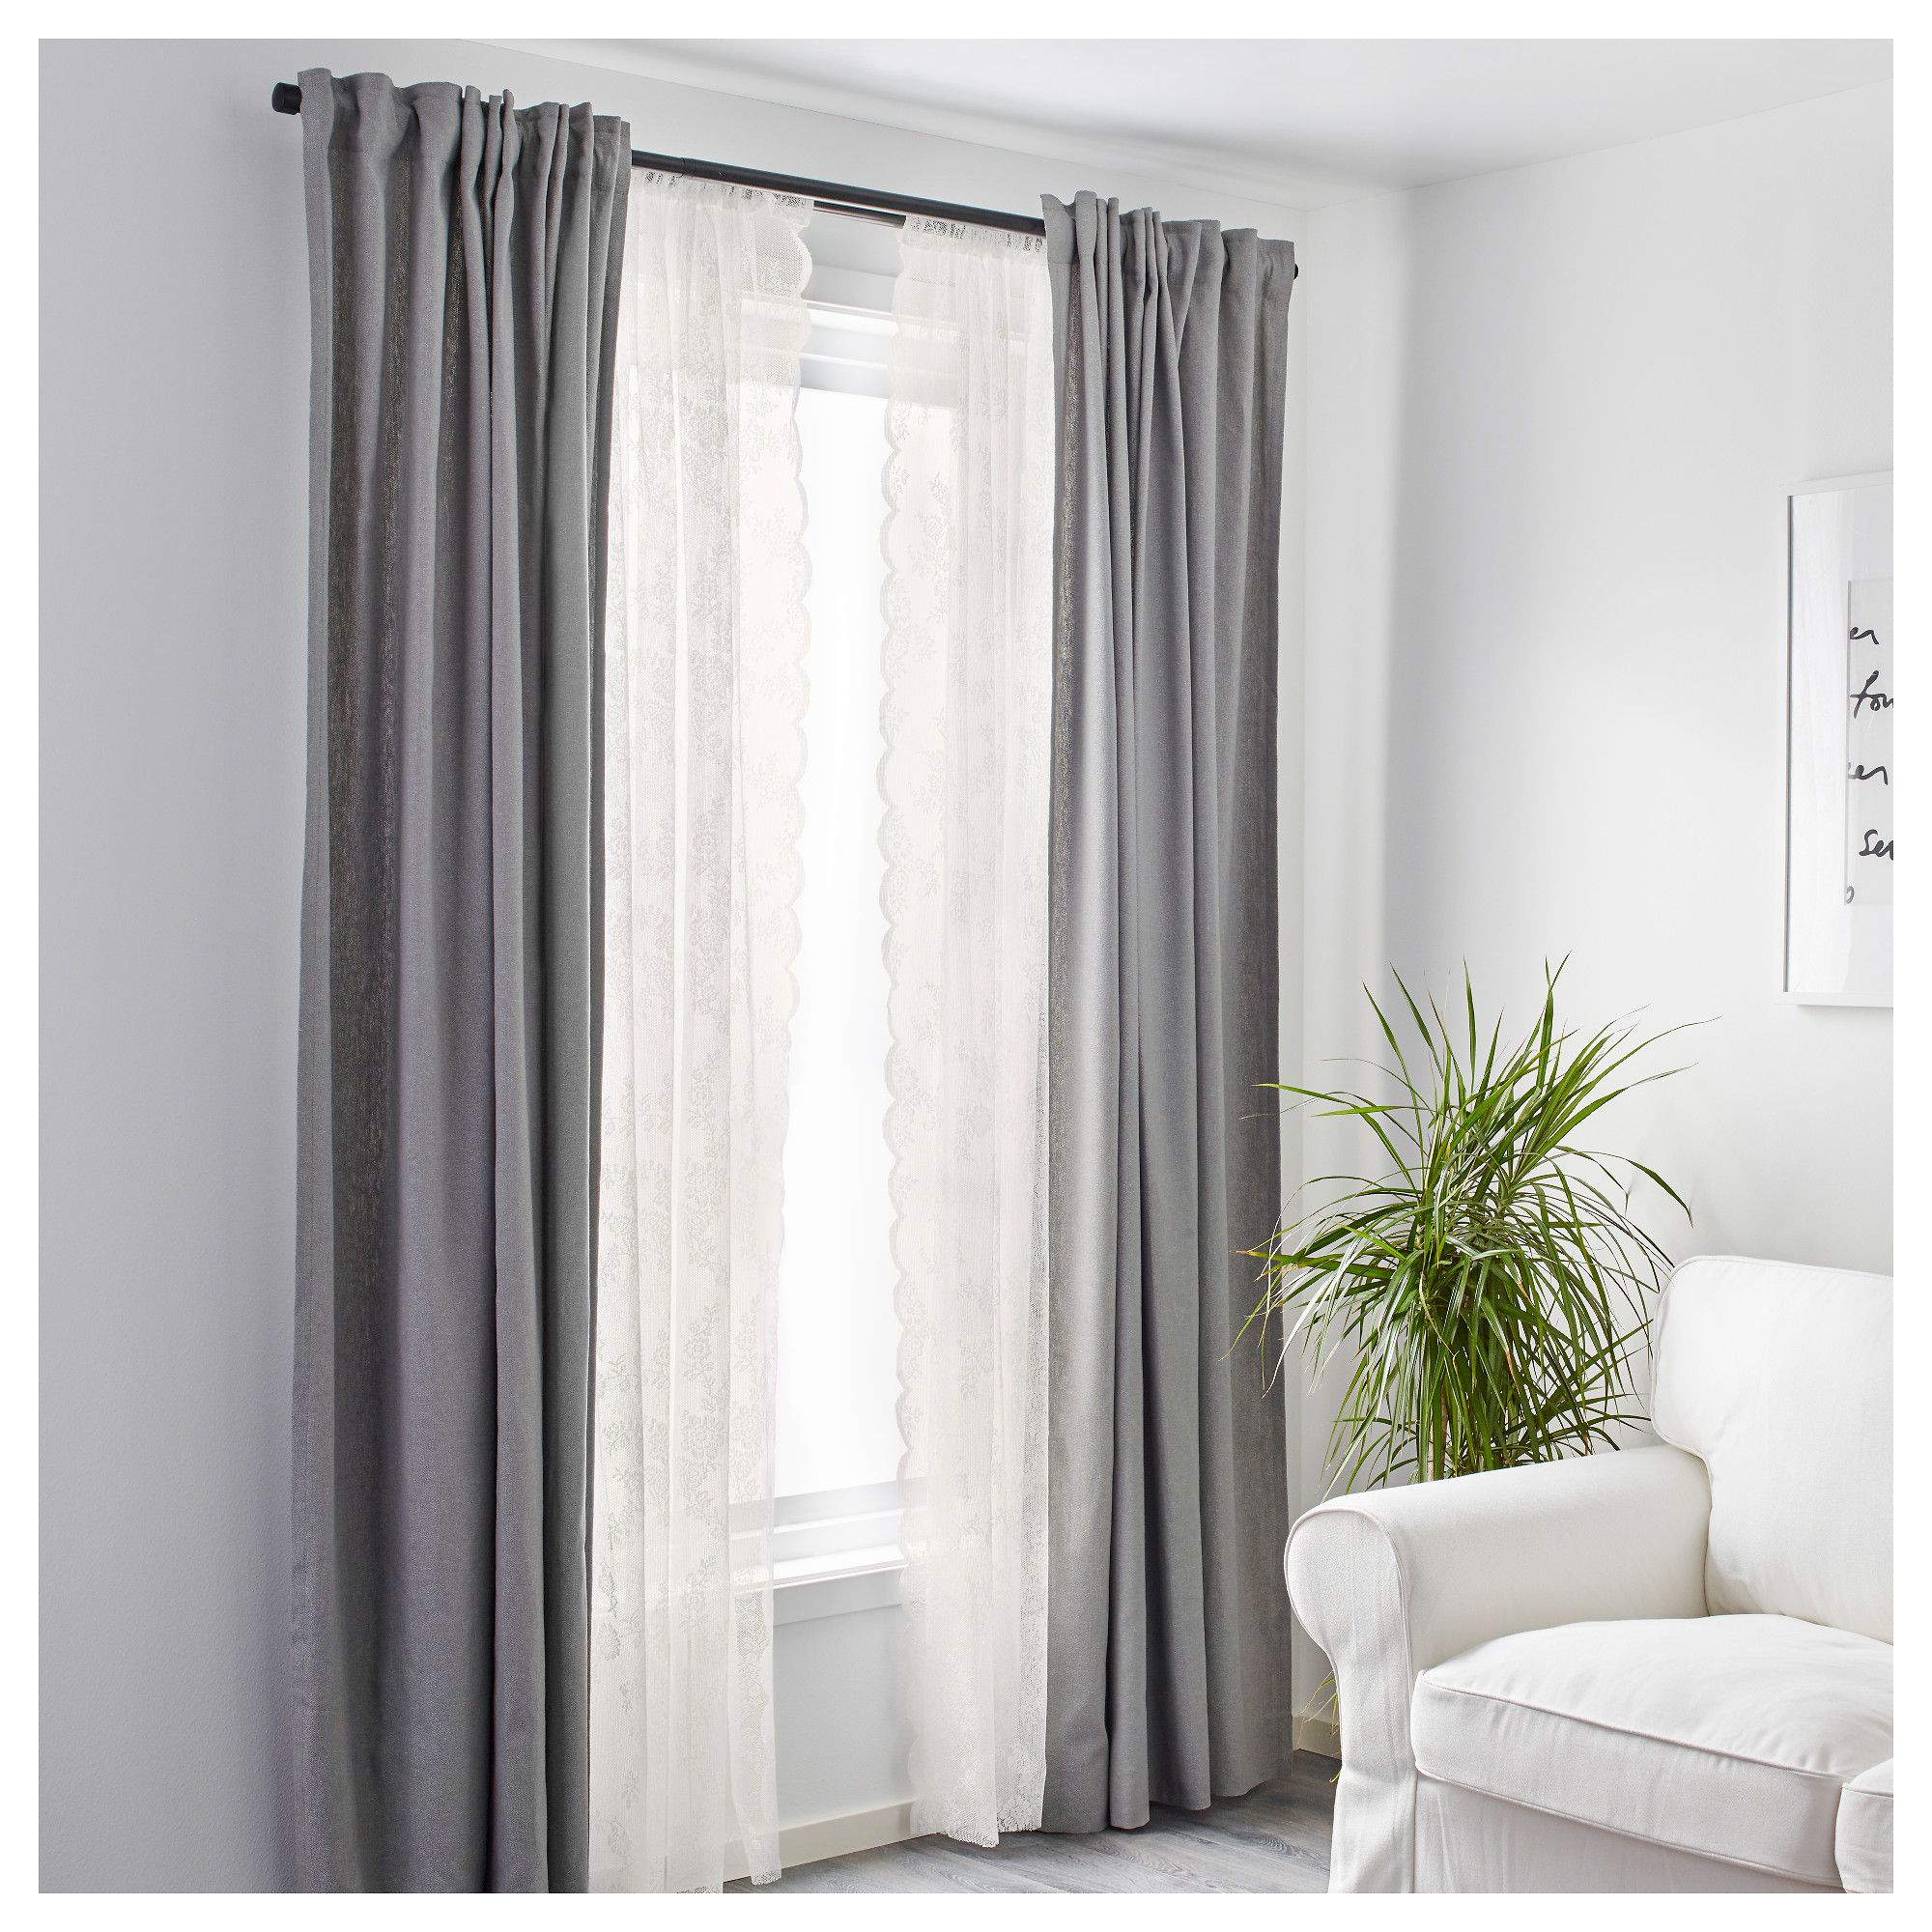 ALVINE SPETS Lace curtains 1 pair offwhite in 2019